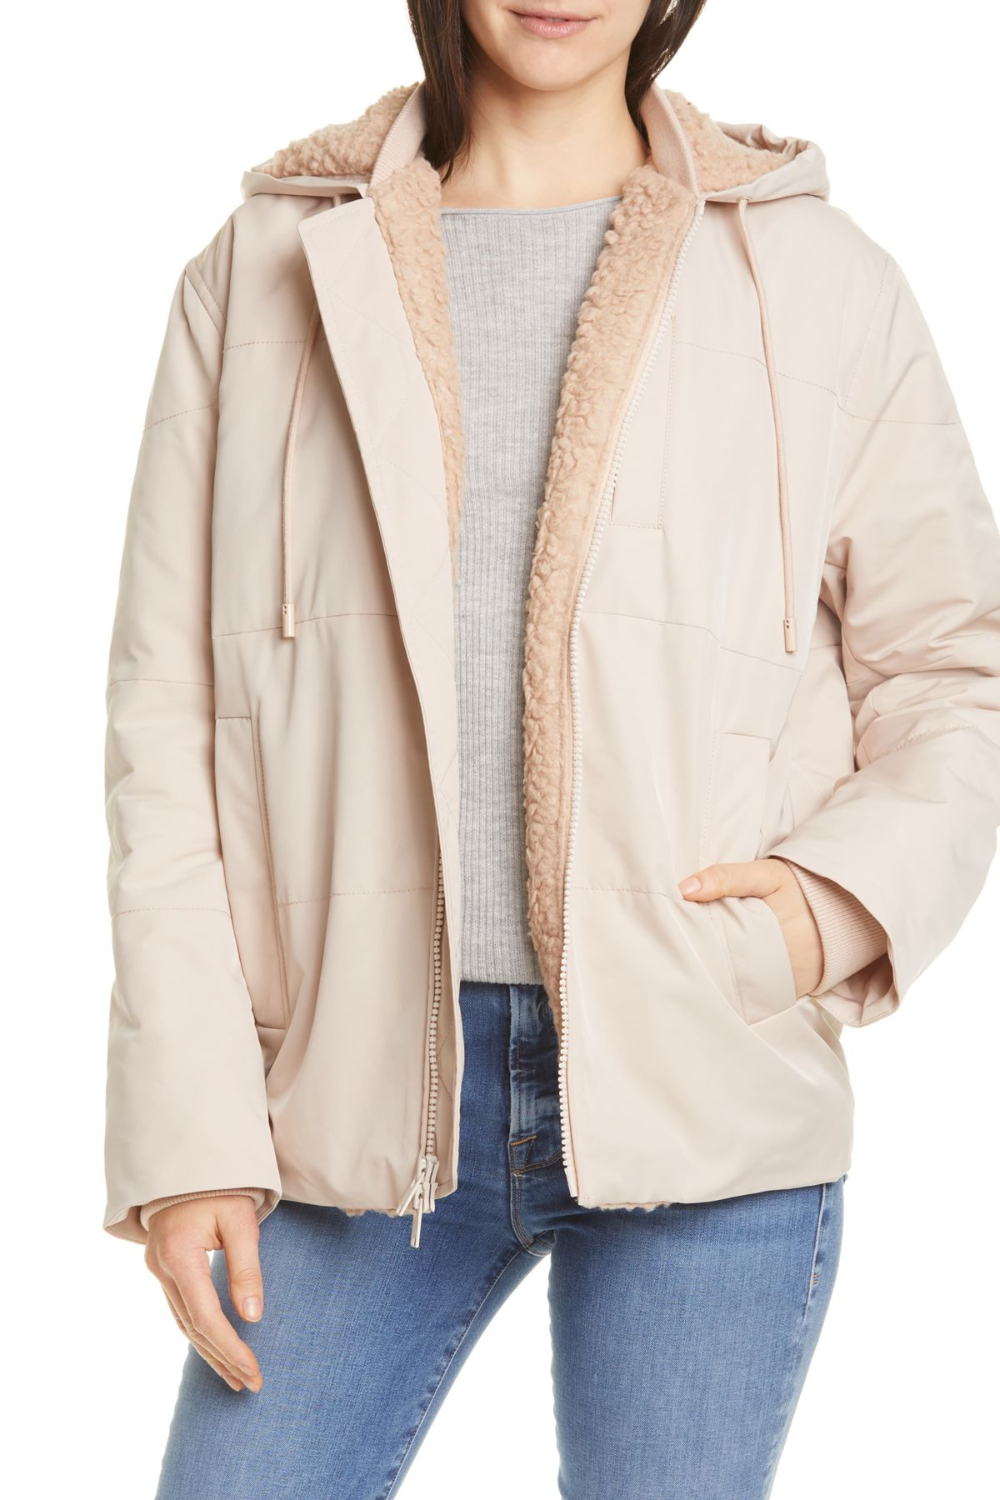 Vince Quilted Faux Shearling Lined Puffer Jacket Nordstrom Rack Quilted Puffer Jacket Hooded Jacket Fashion Hooded Jacket [ 1500 x 1000 Pixel ]